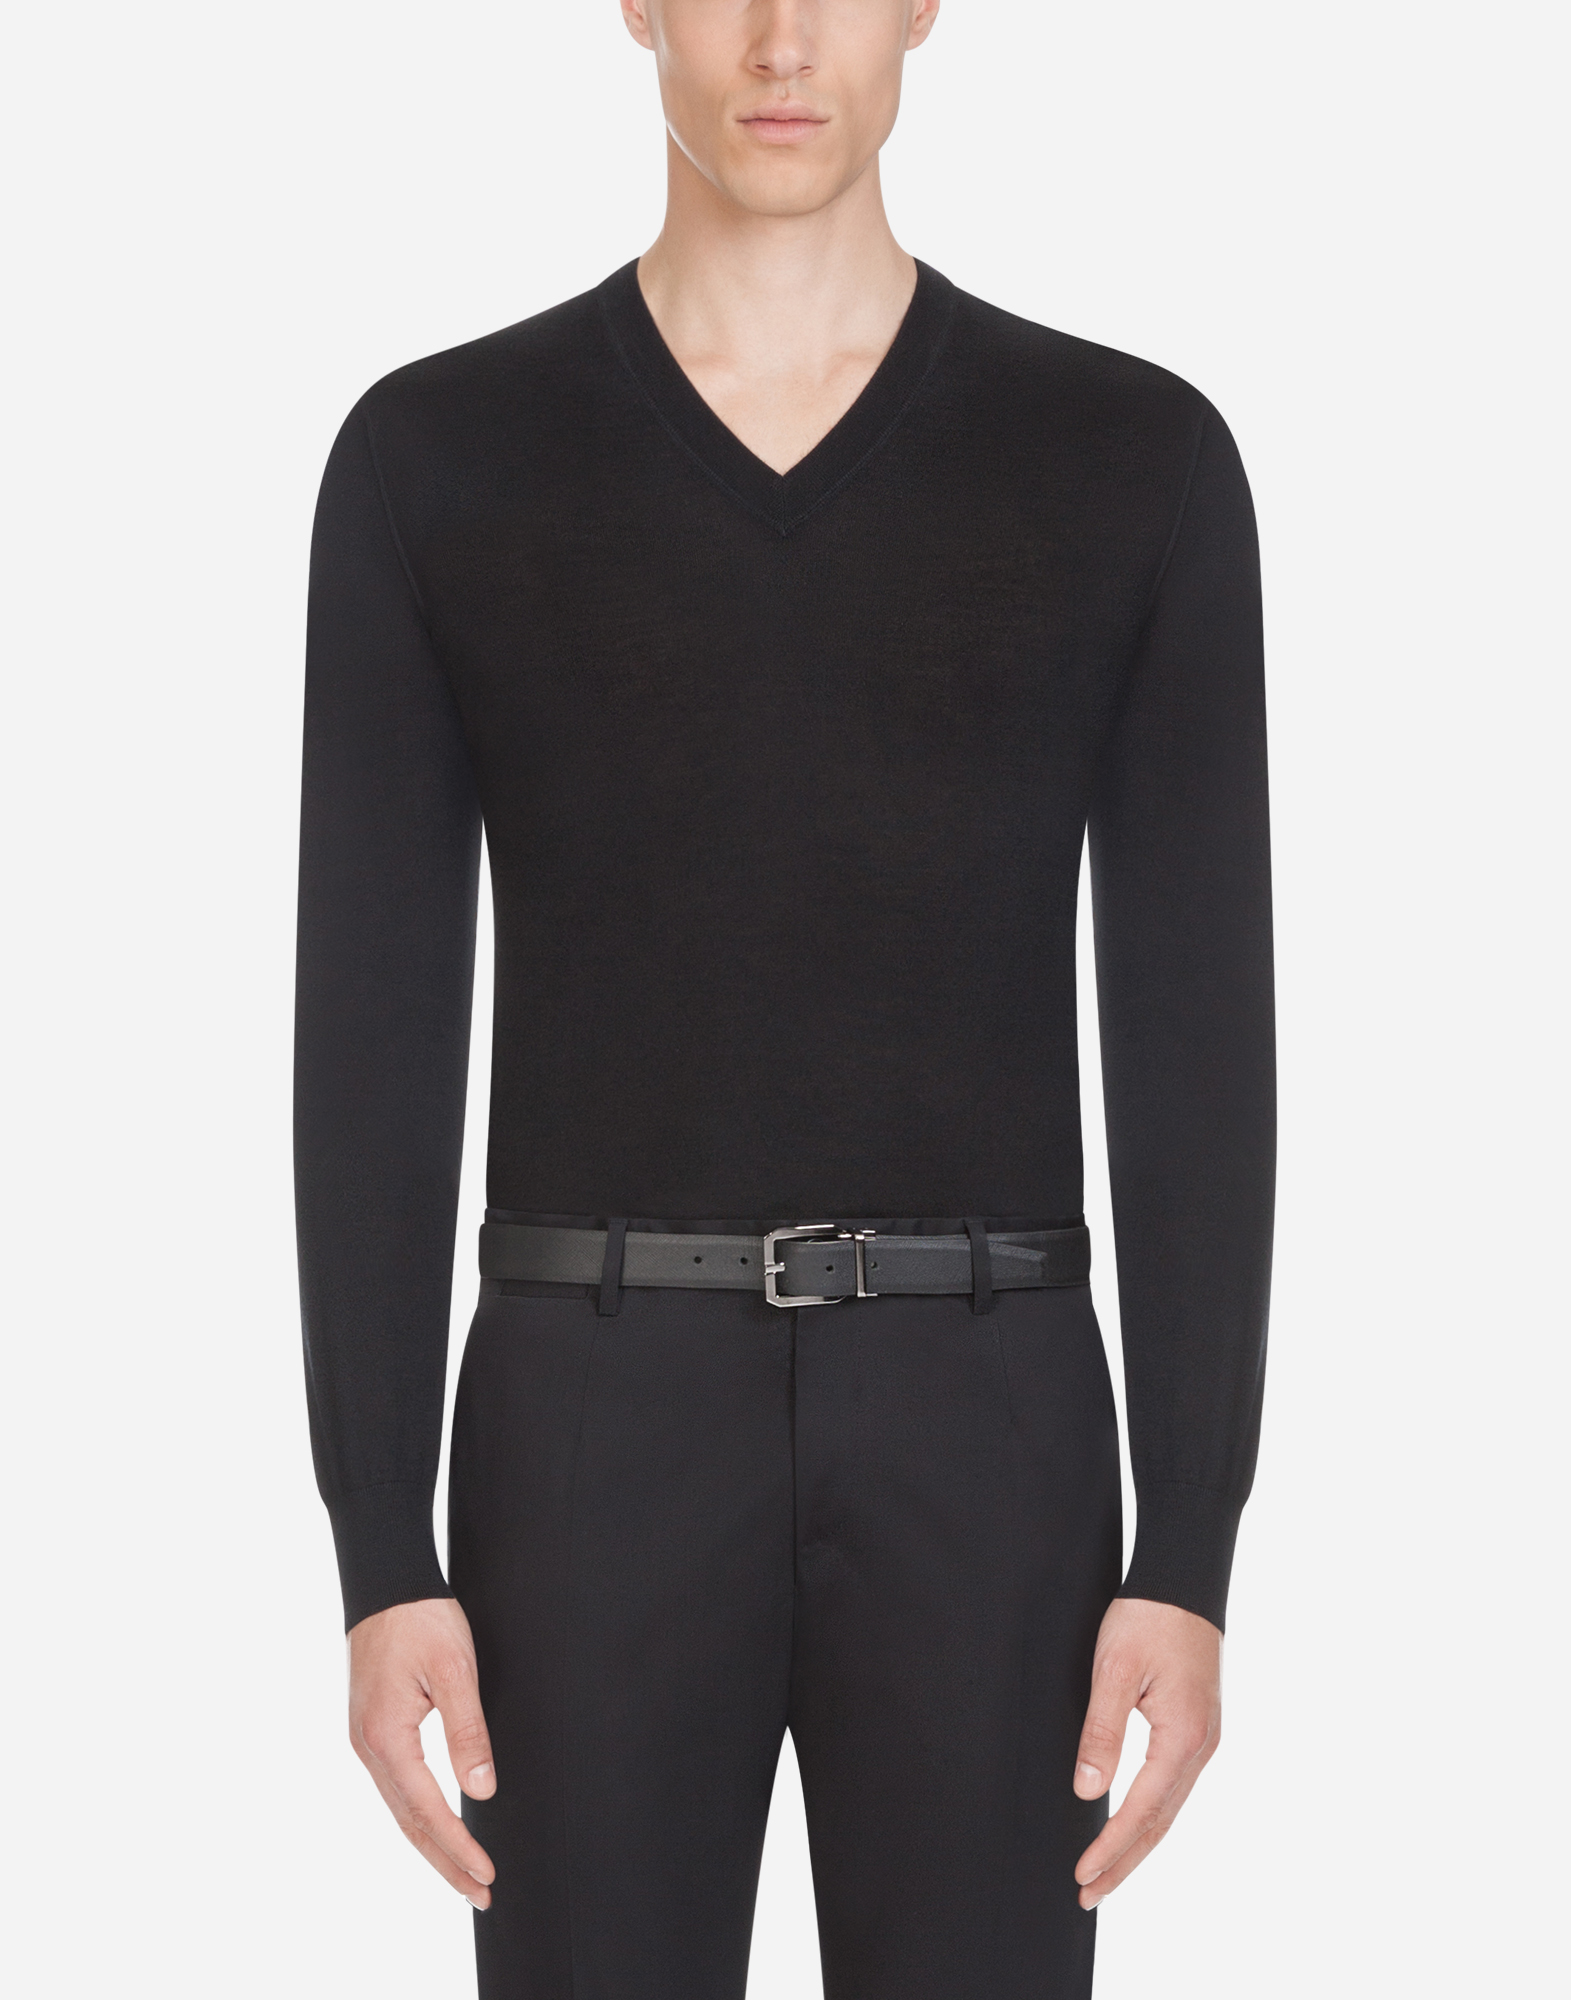 Dolce&Gabbana V-NECK SWEATER IN CASHMERE